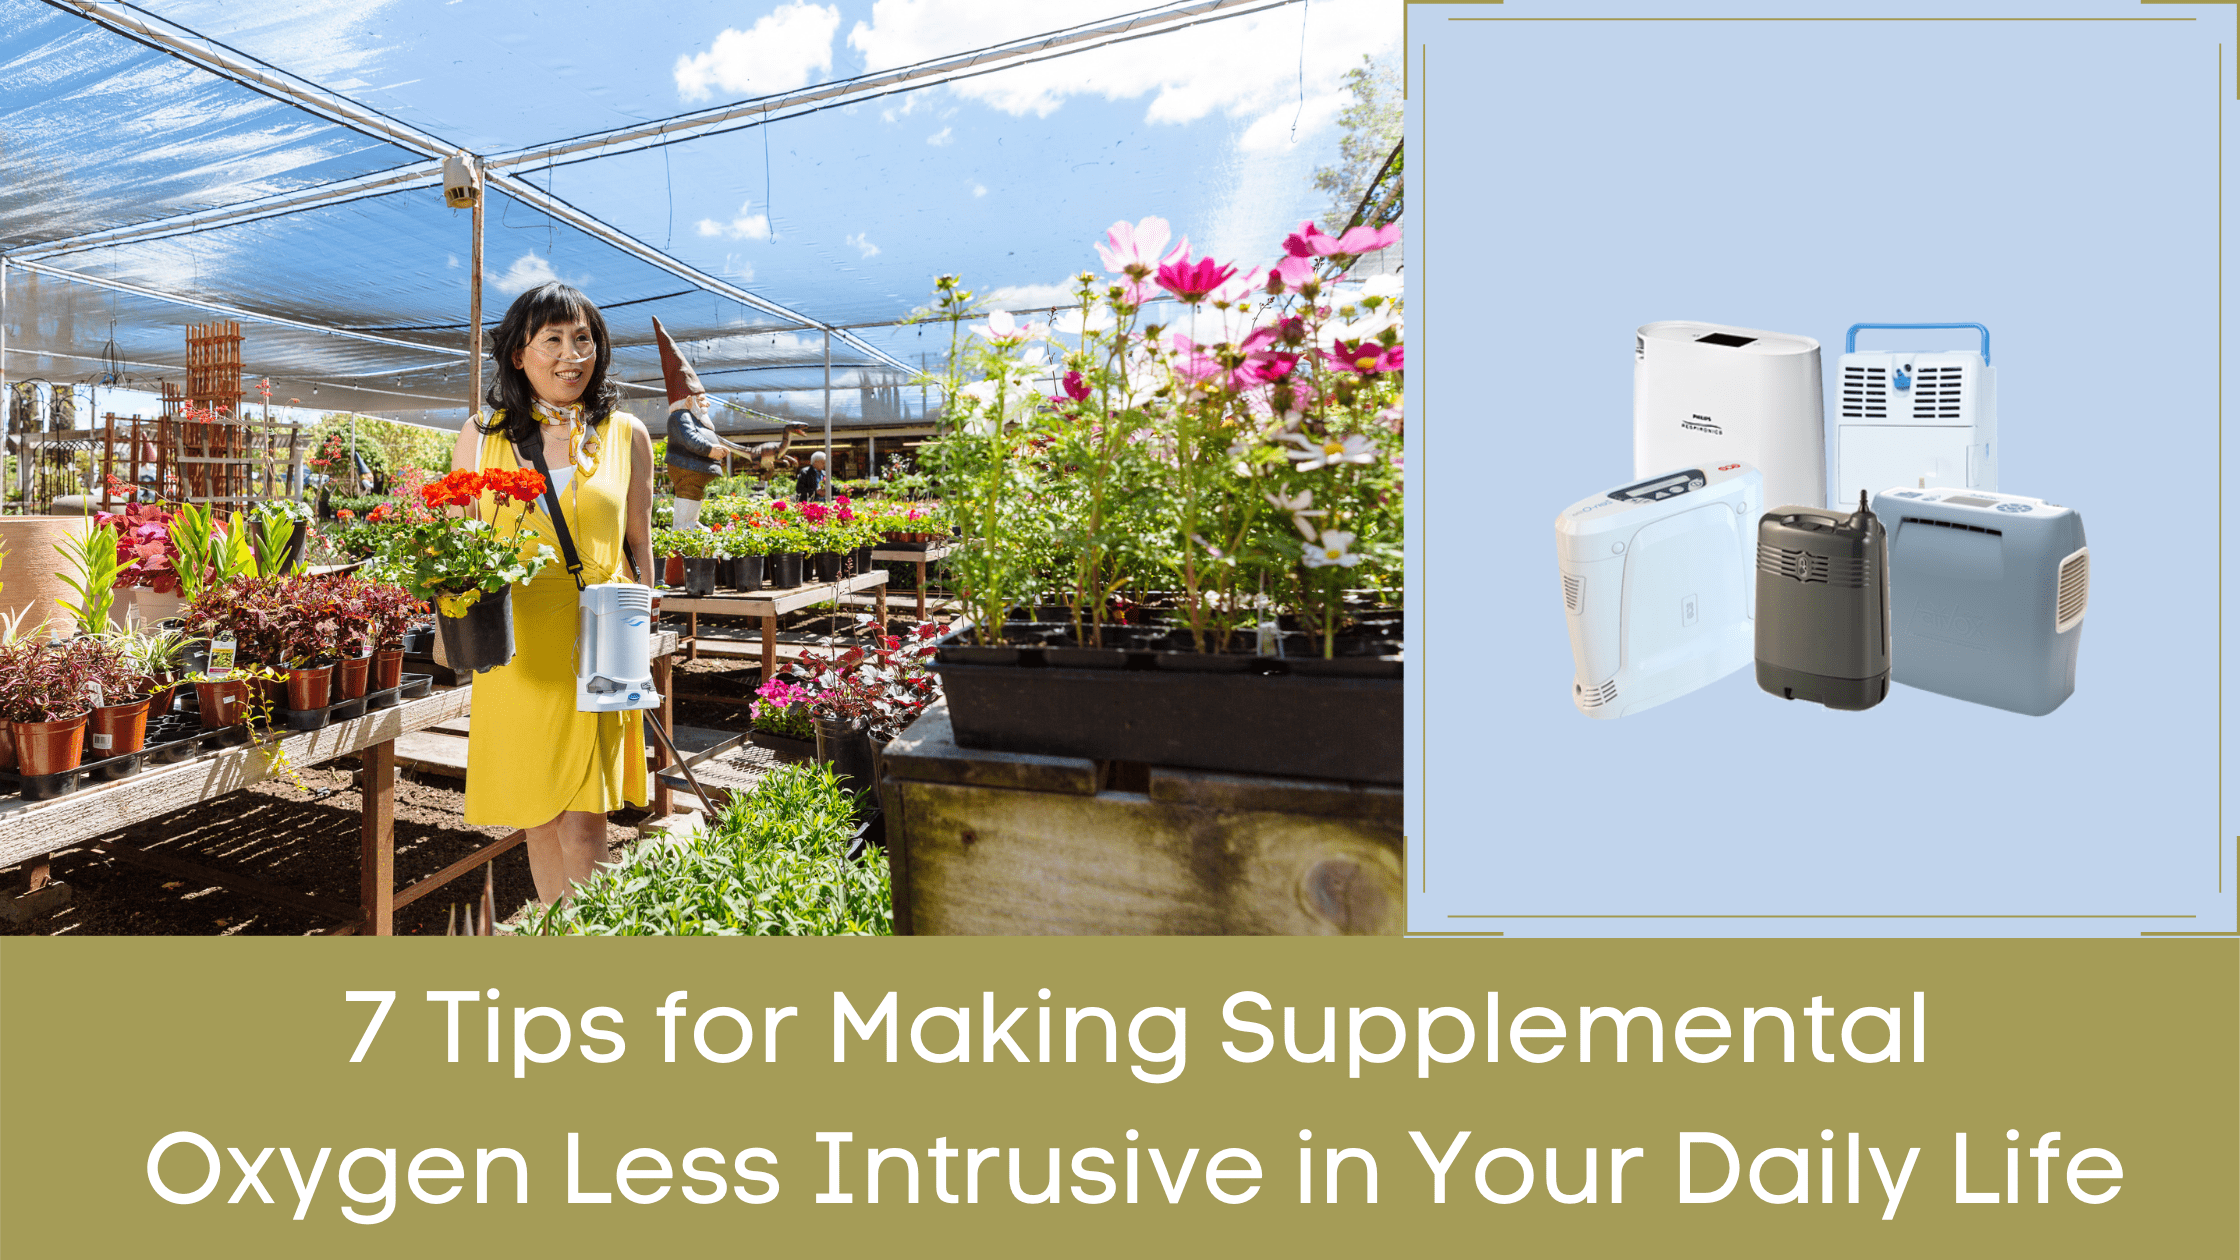 7 Tips for Making Supplemental Oxygen Less Intrusive in Your Daily Life